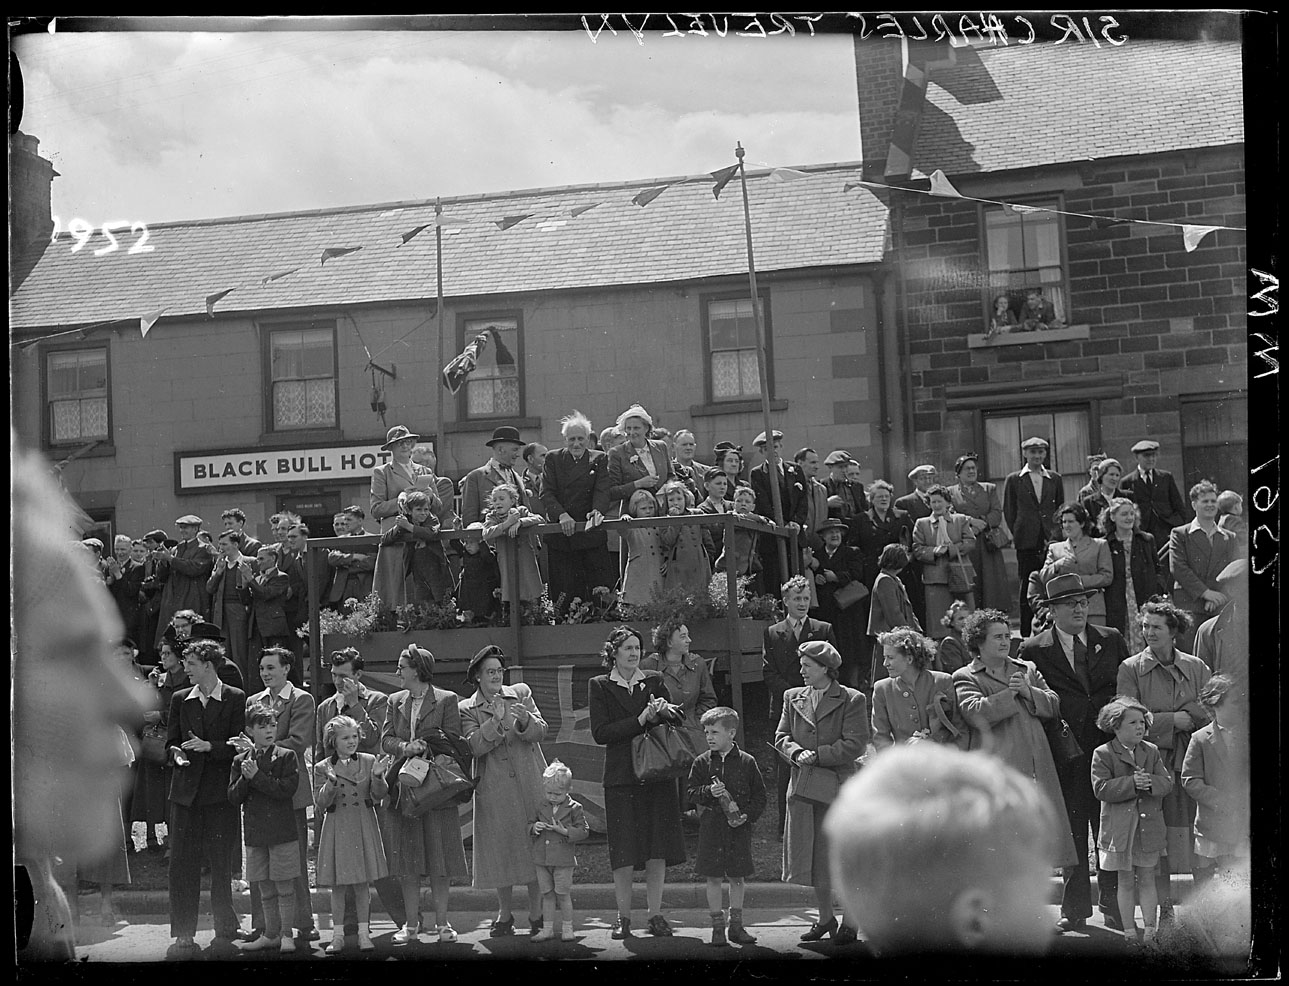 1950 Crowd Outside The Black Bull